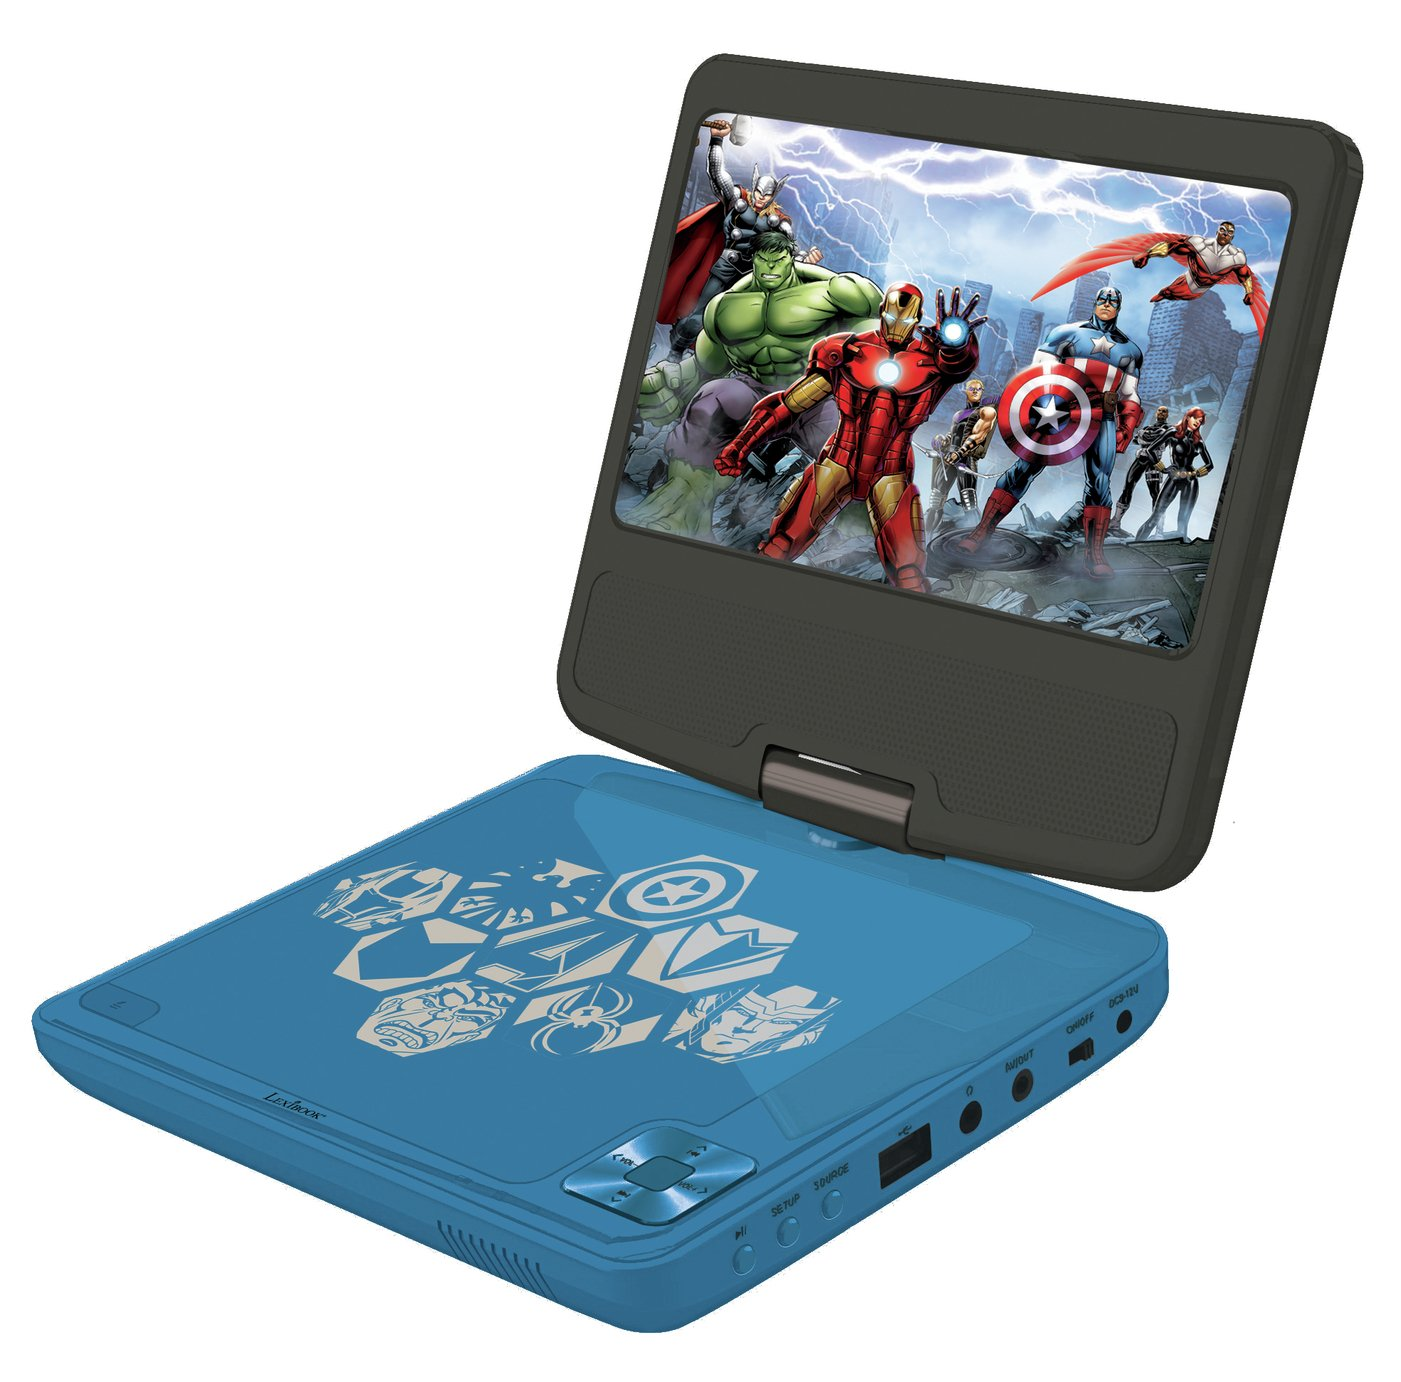 Lexibook Portable DVD Player - Avengers